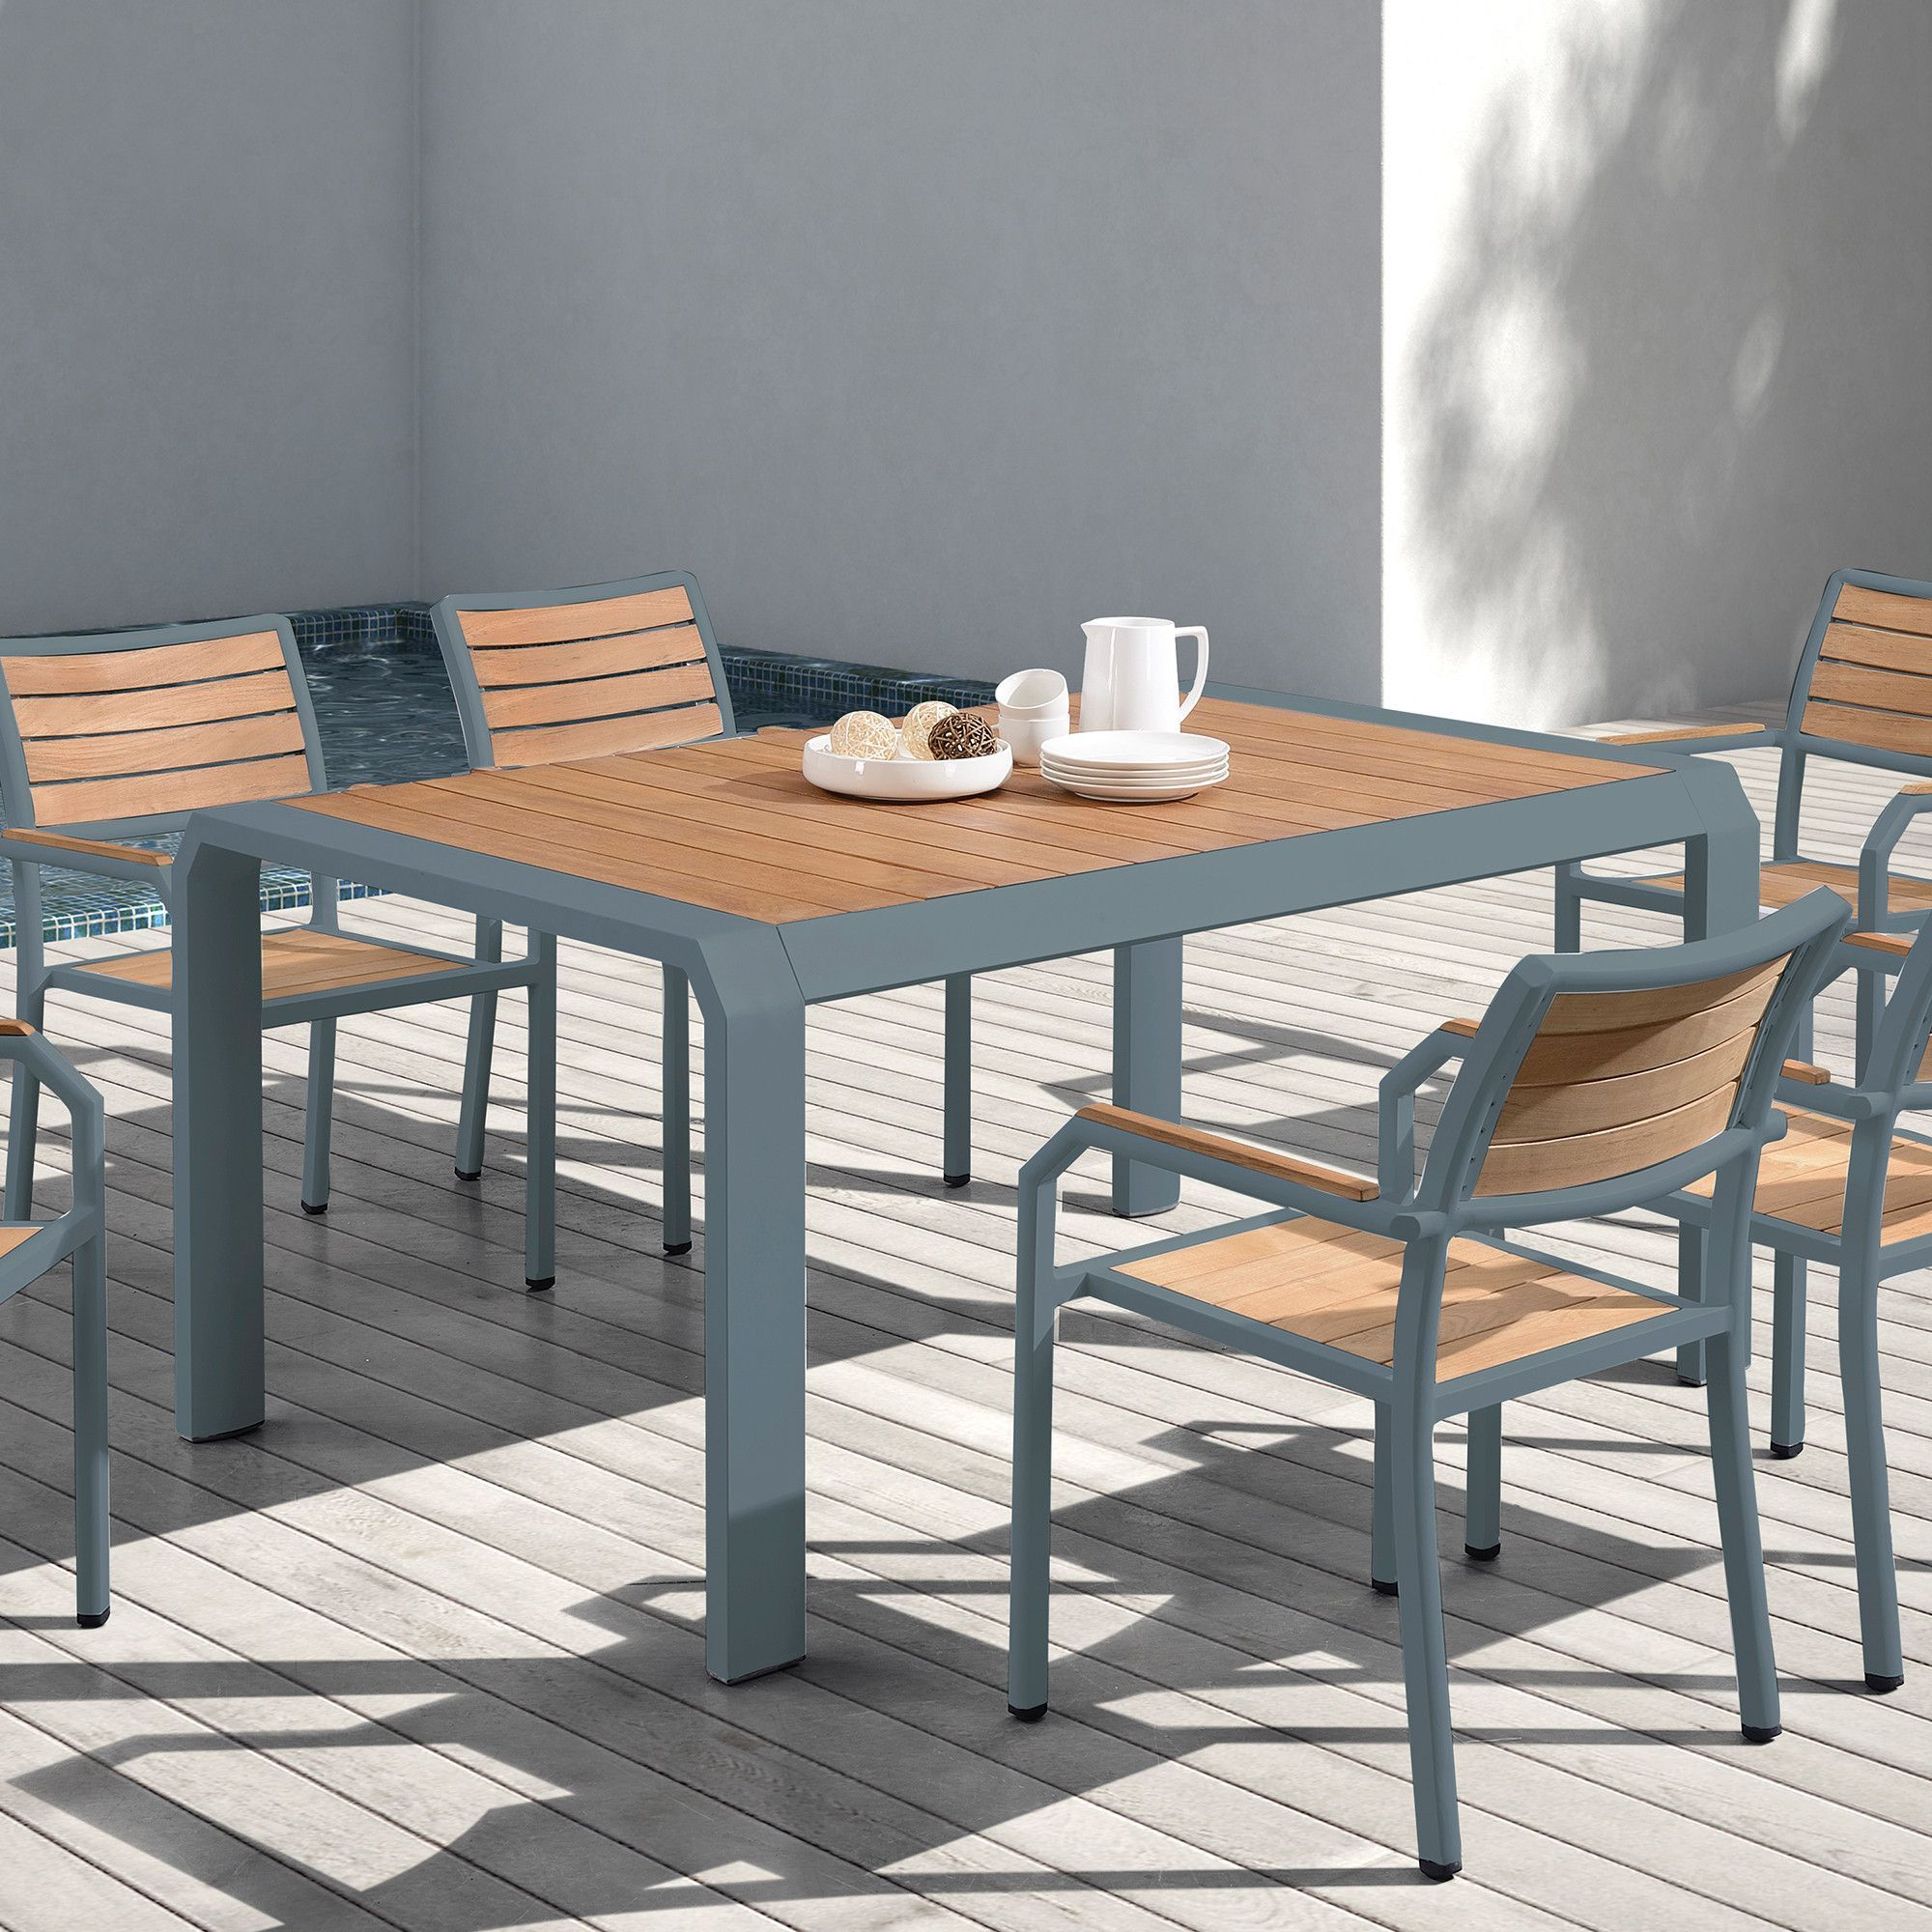 Armen Living Minsk Outdoor Patio Dining Table In Gray Powder